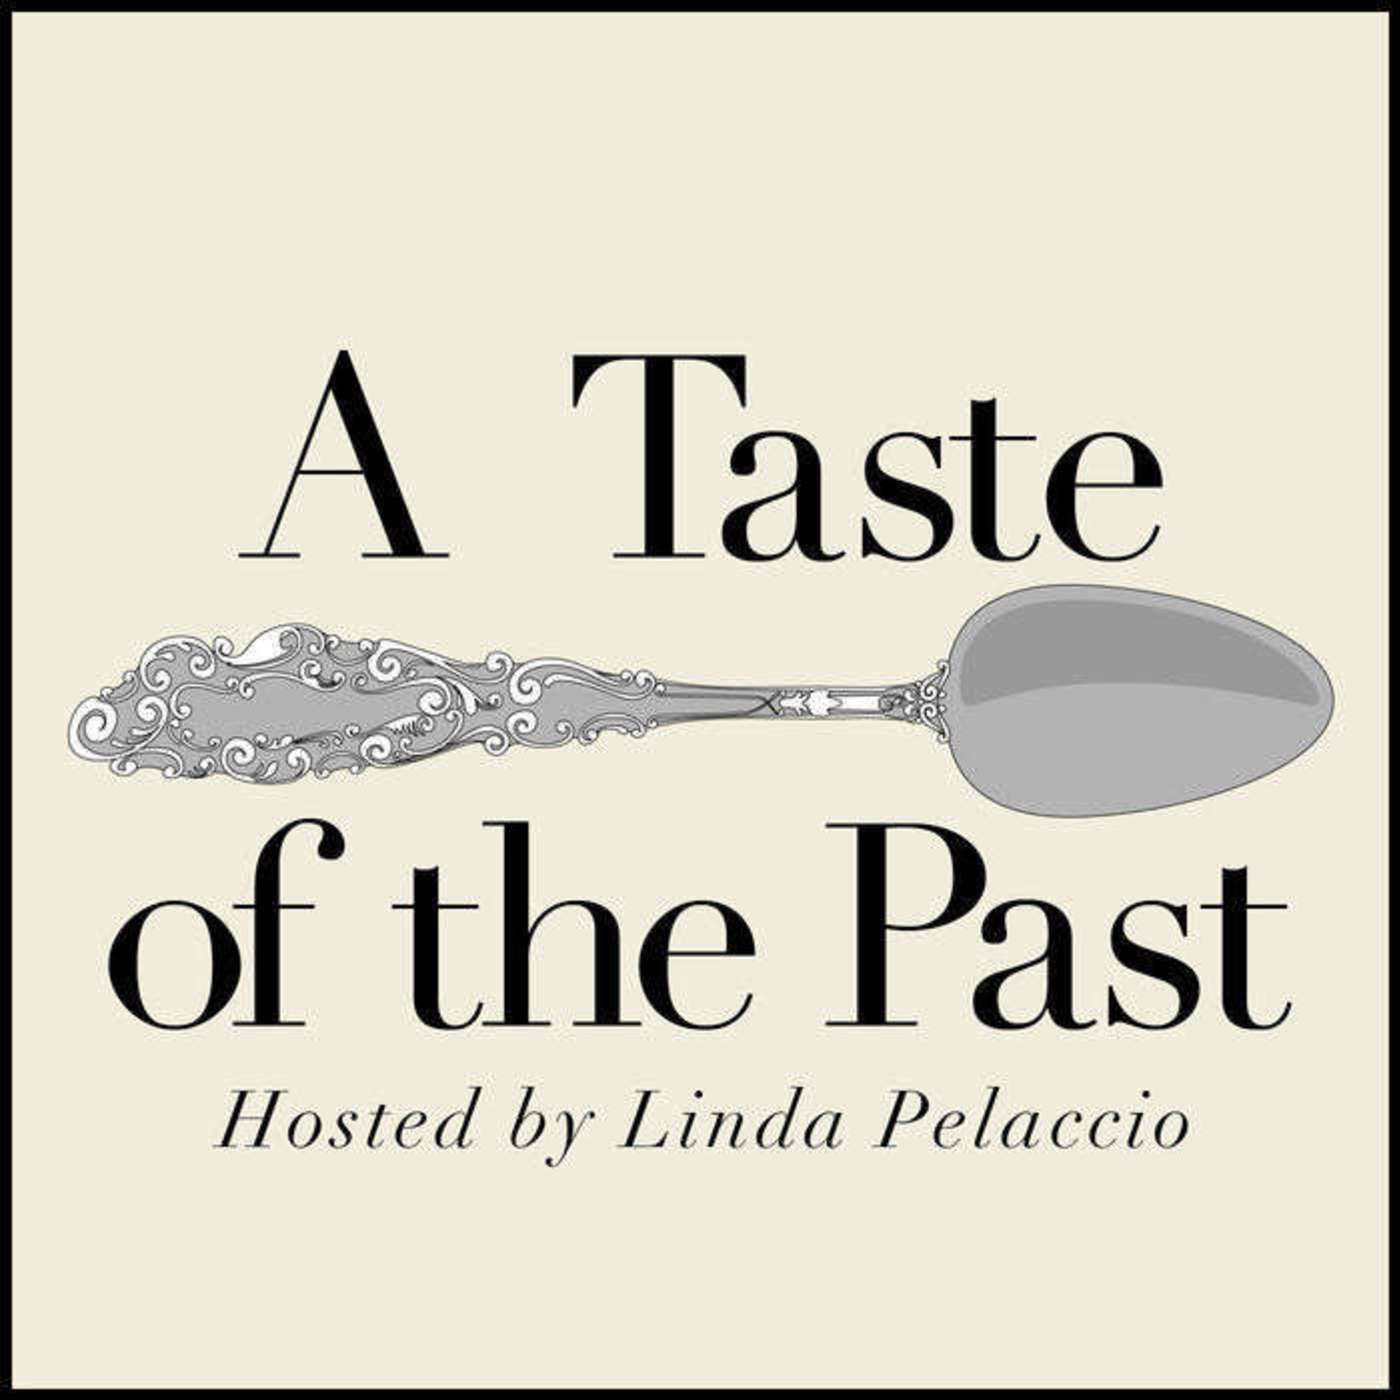 Episode 85: The History of the Christmas Feast